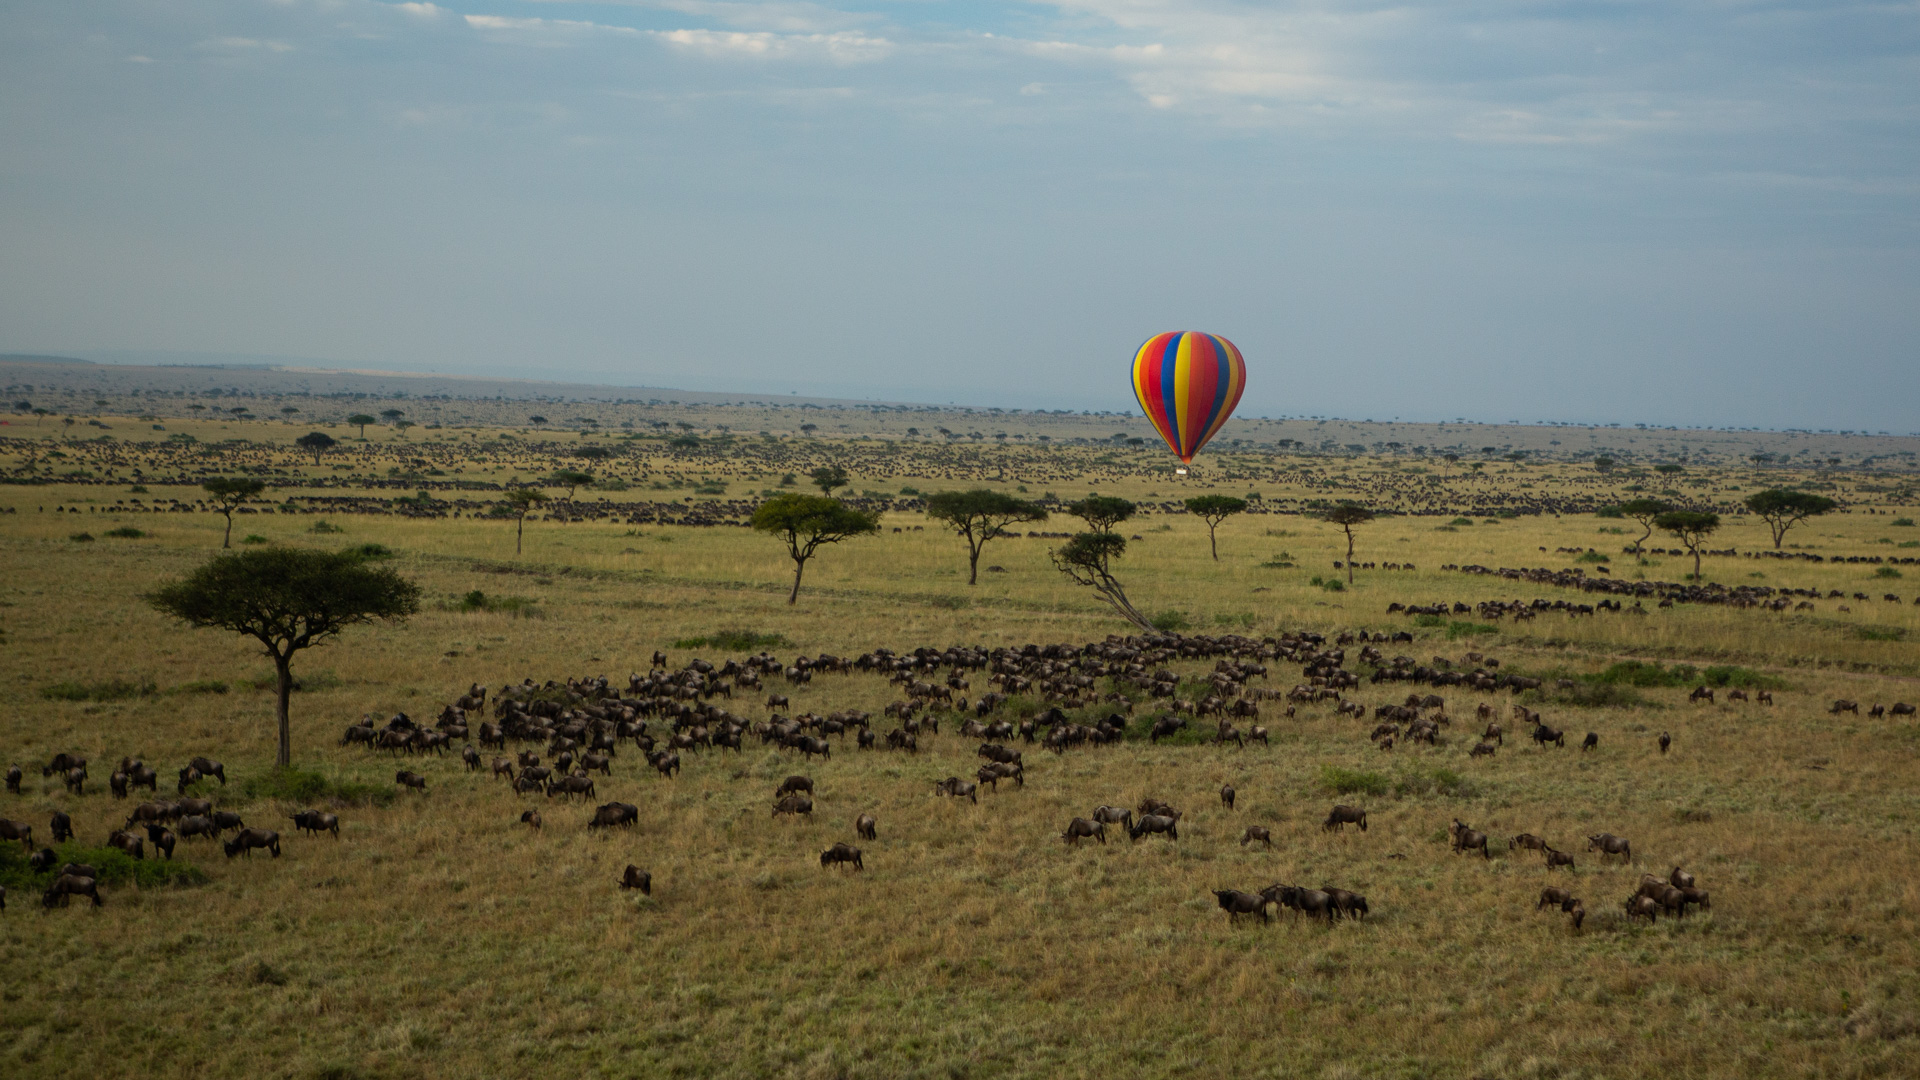 Balloon and migration